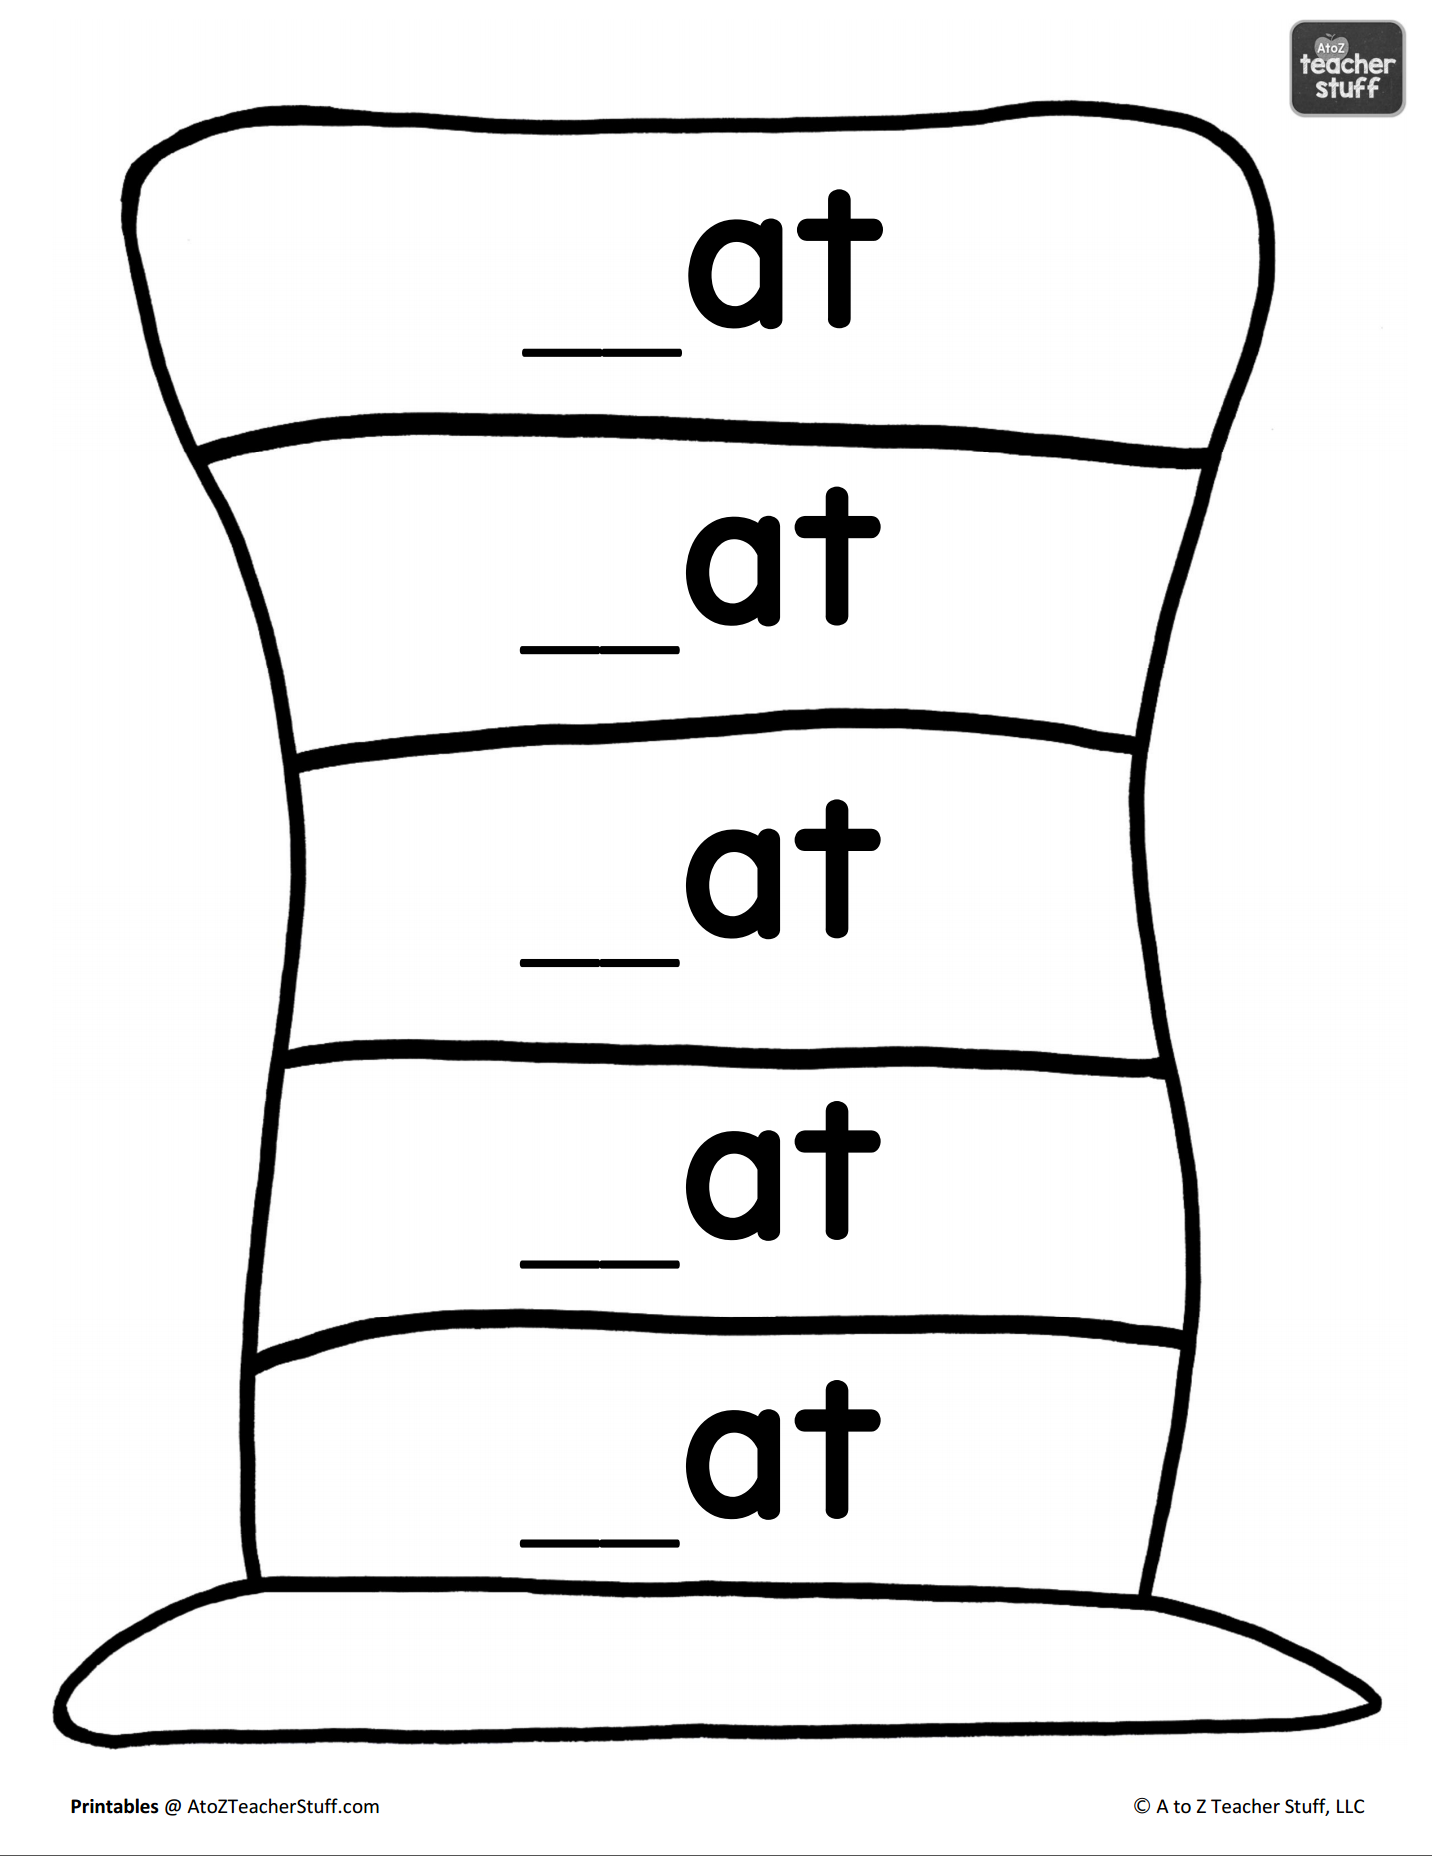 Hat Printables For Dr Seuss Cat In The Hat Or Just Hats